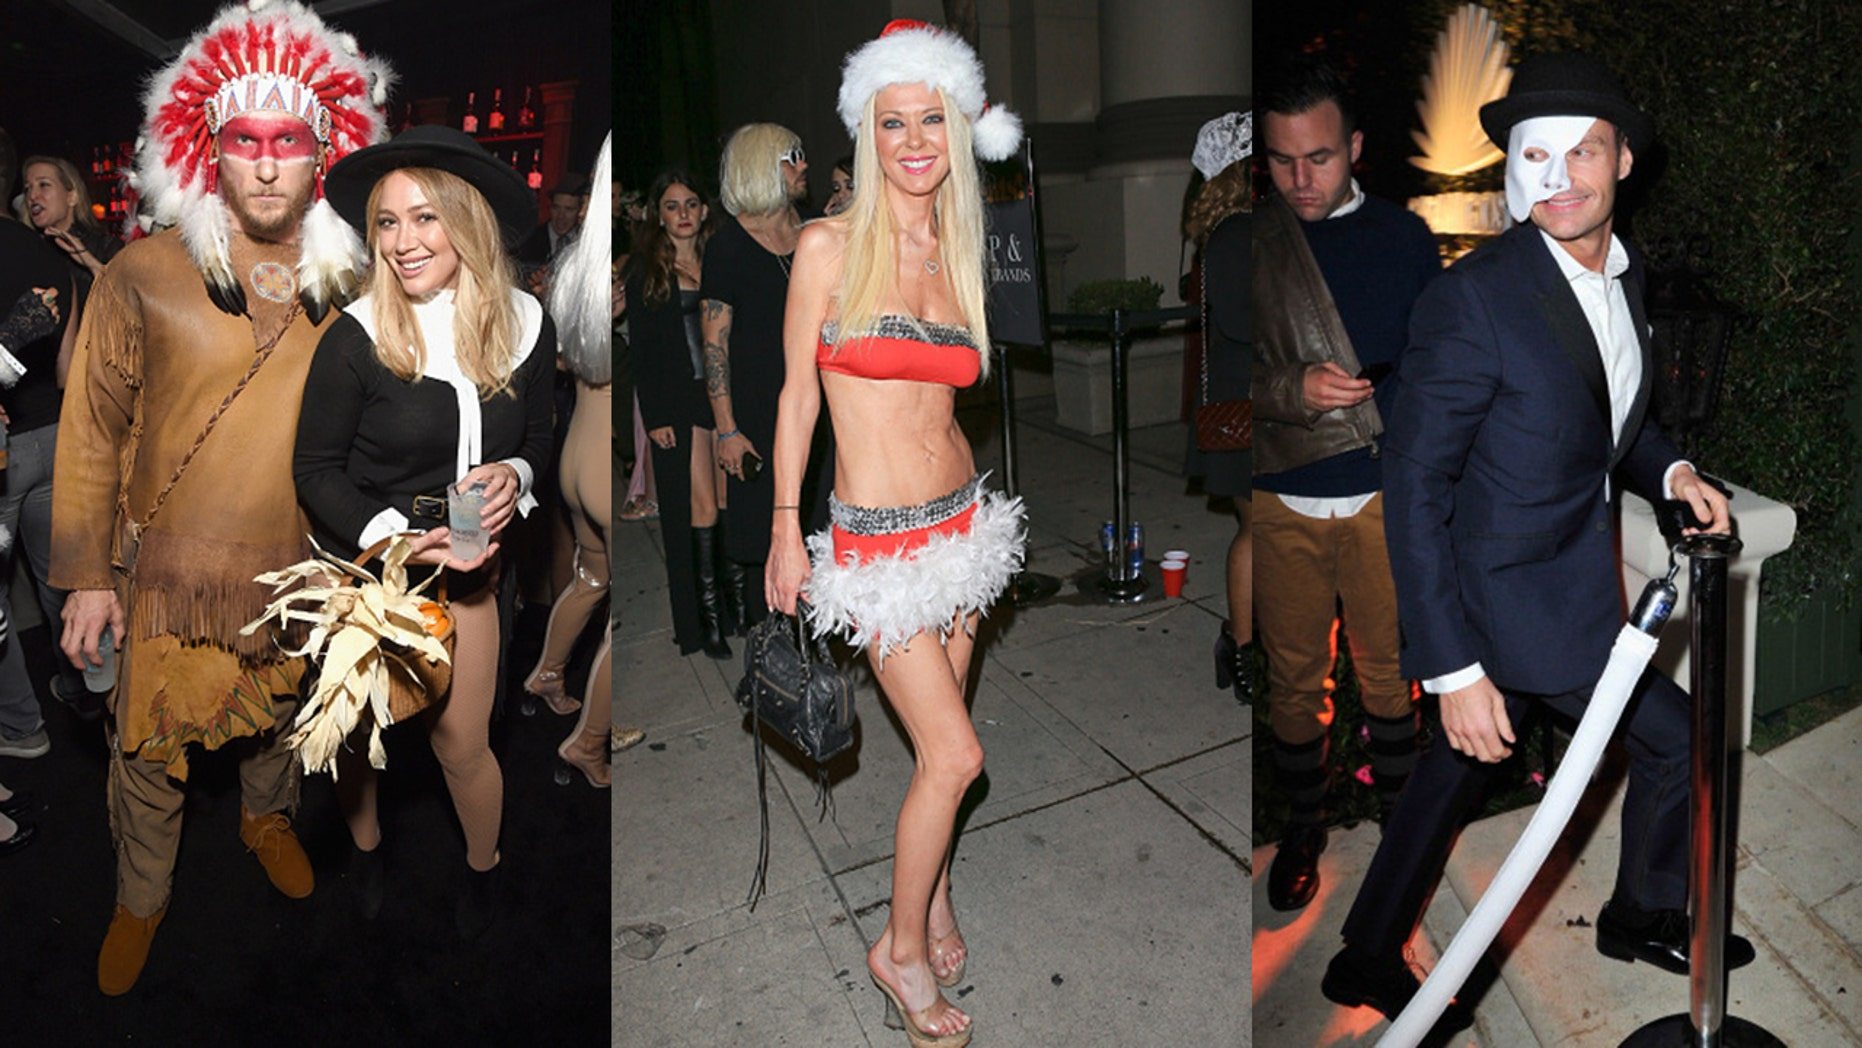 We're taking a look back on some of the worst celebrity Halloween costumes.